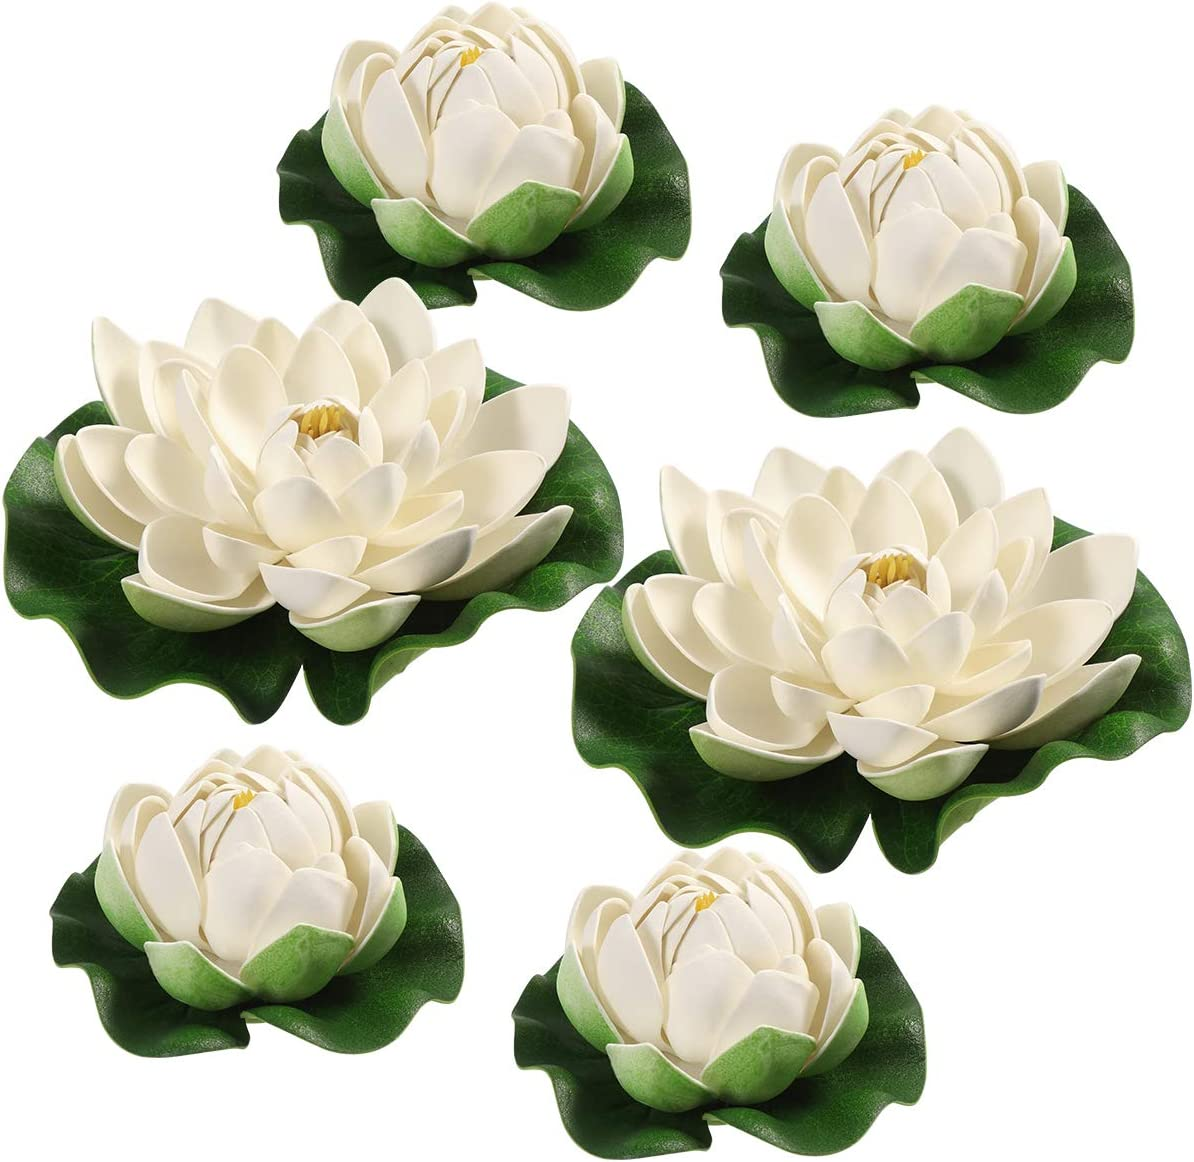 BESPORTBLE Artificial Flowers White Lotus Simulation Floating Pond Lotus for Decoration Indoor Outdoor Decor Ornaments,6PCS,17cm+10cm